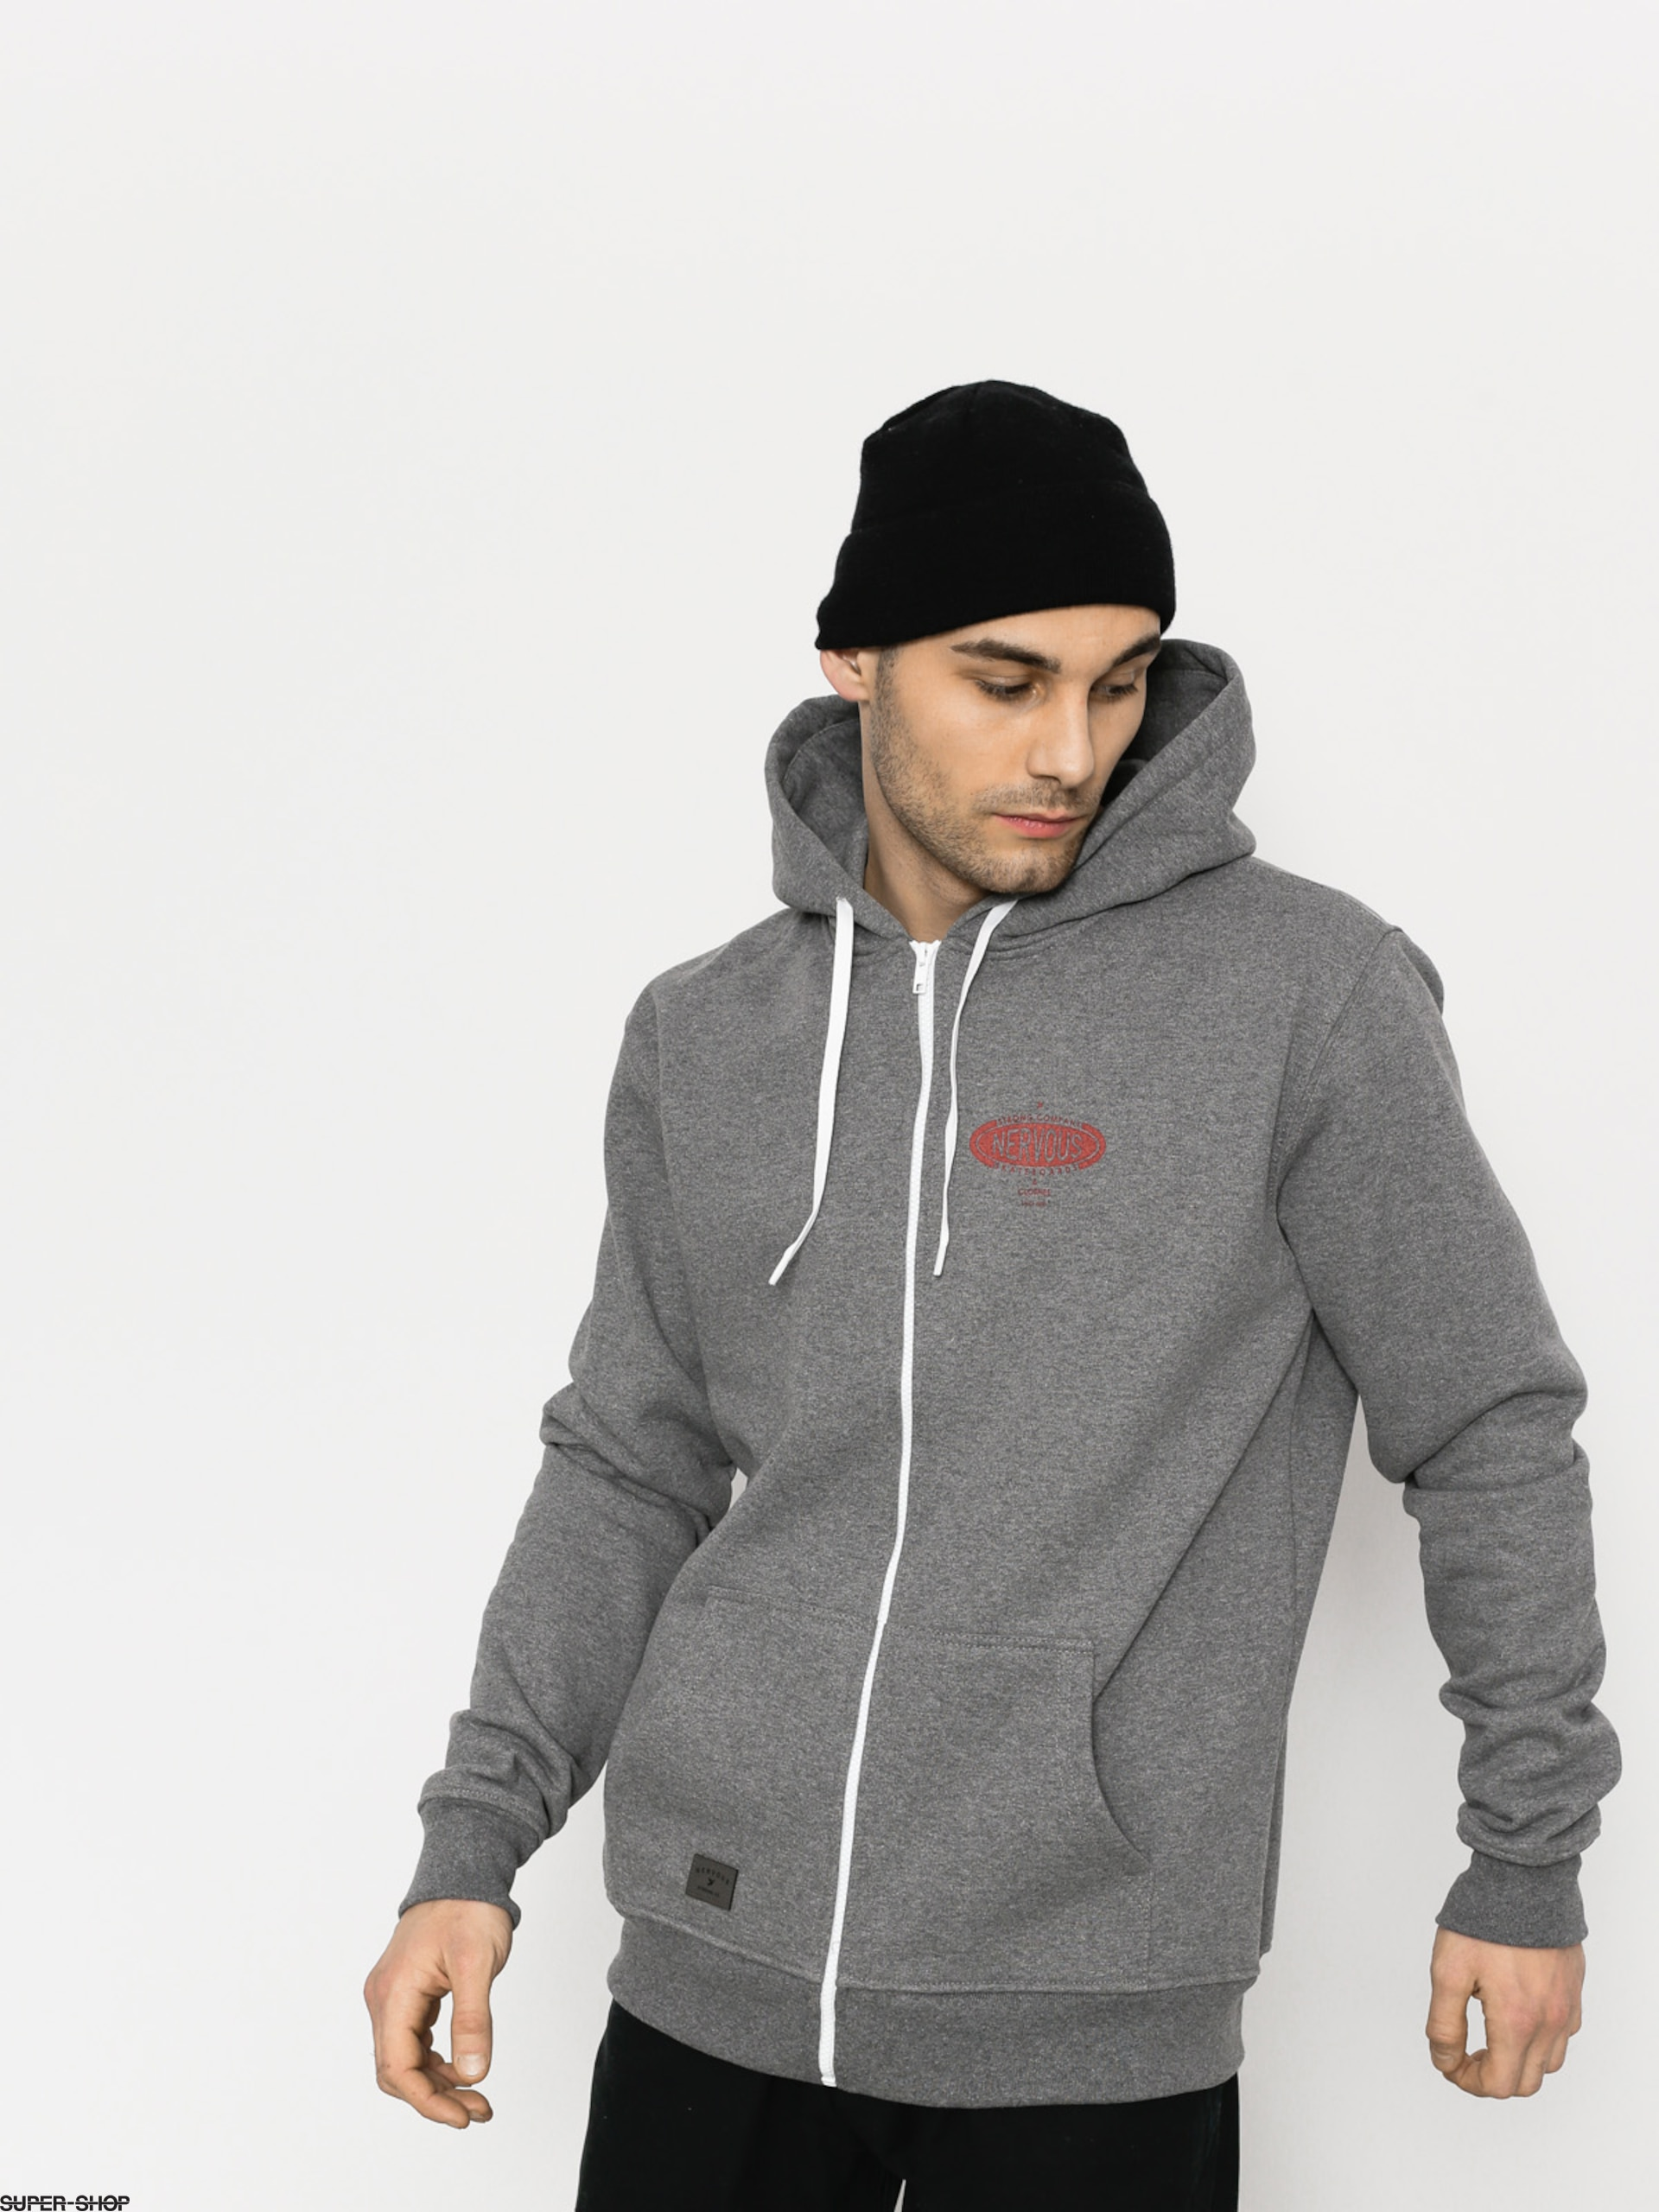 Nervous Hoodie Tire Shop ZHD (grey)